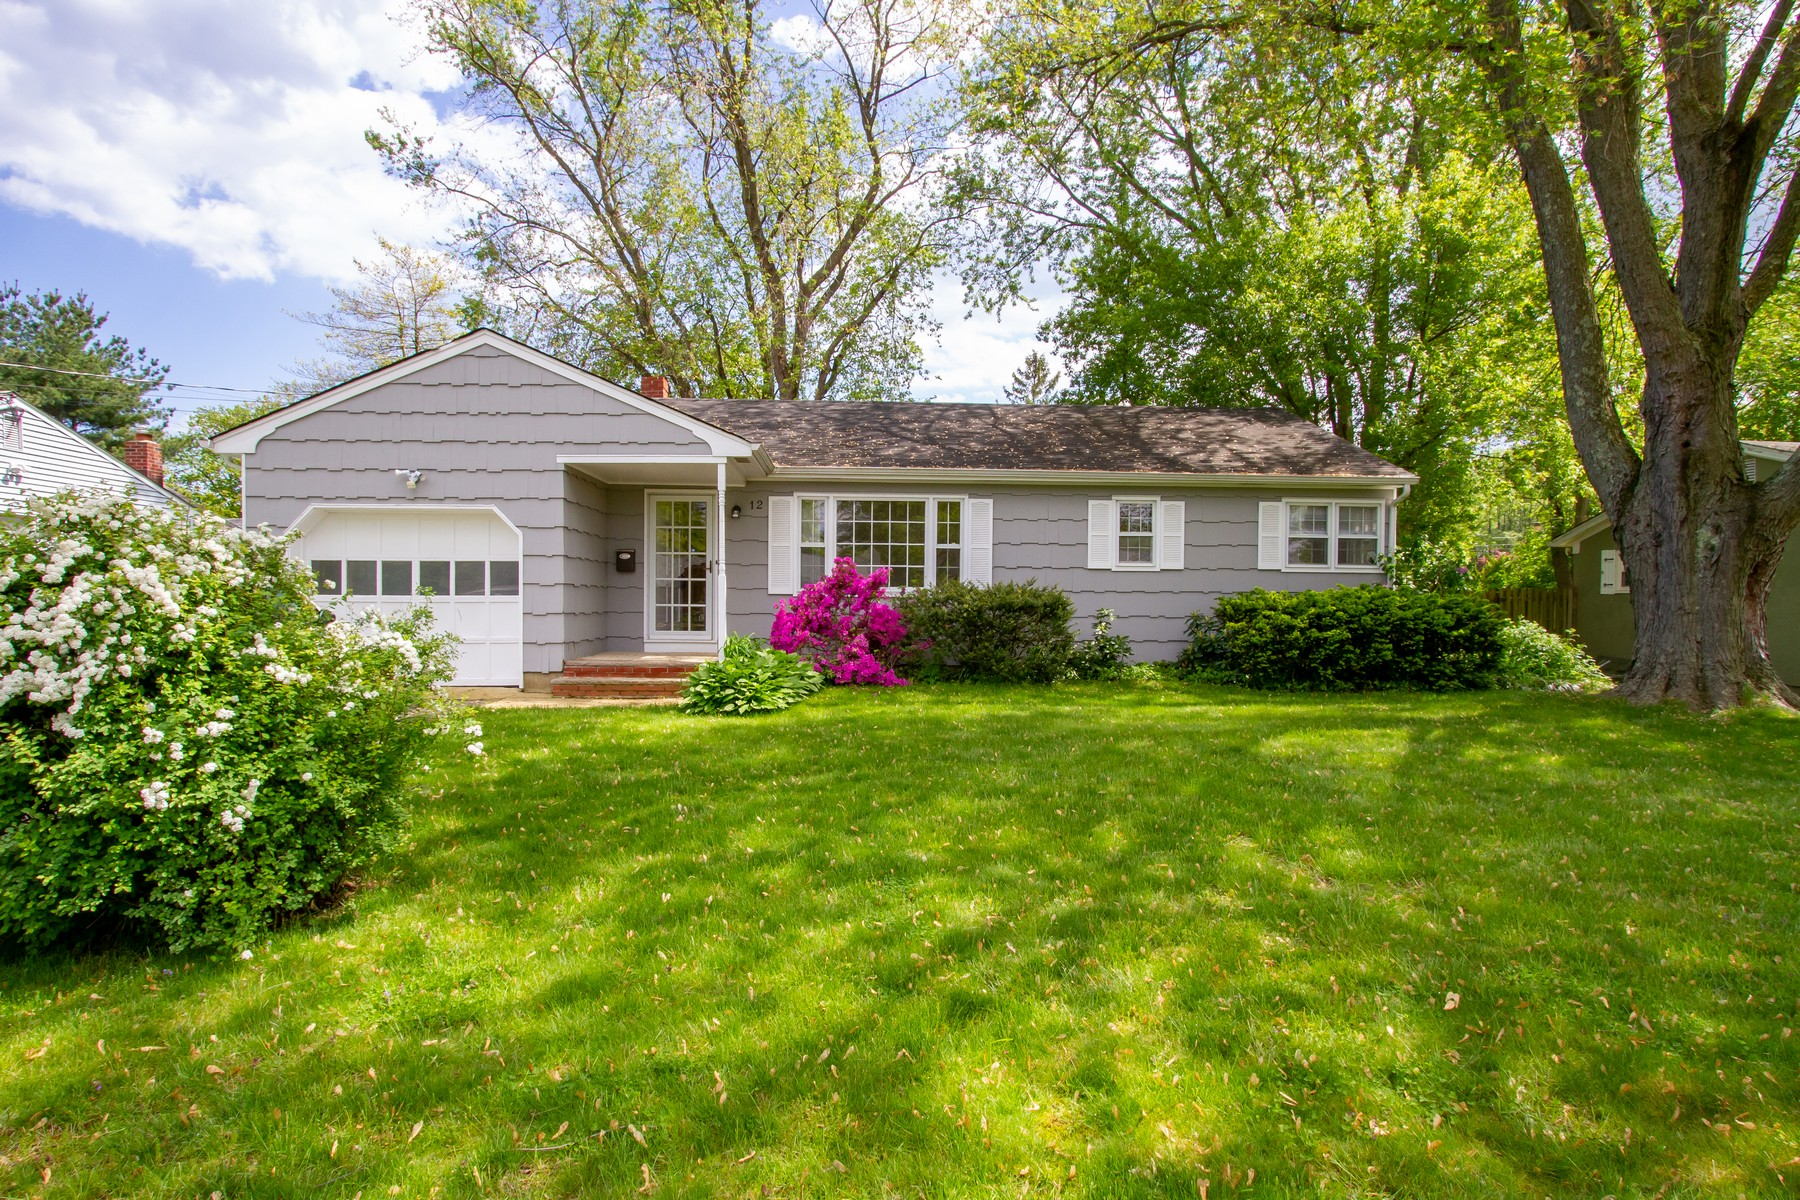 Single Family Homes for Sale at Oceanport Ranch 12 Avon Ave Oceanport, New Jersey 07757 United States